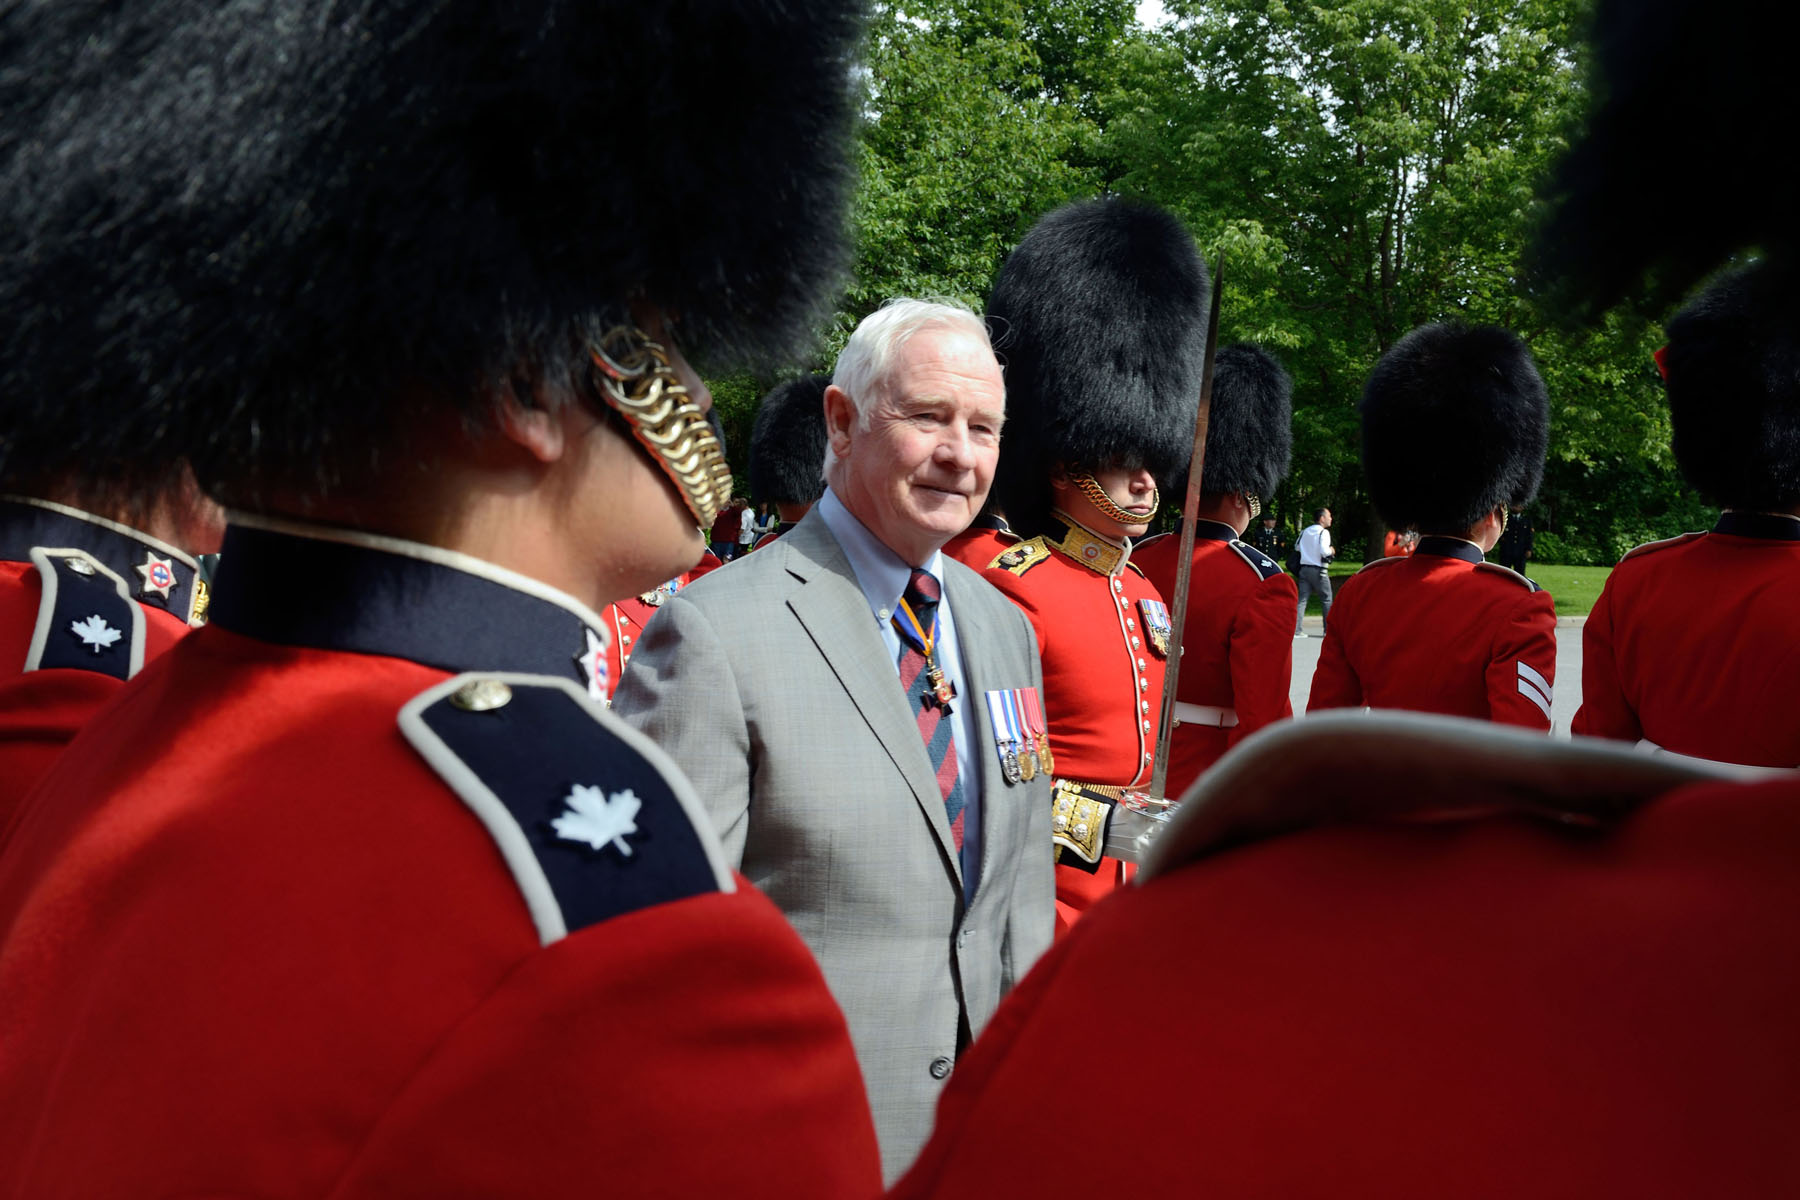 Over the course of the summer, visitors can come to Rideau Hall and witness the pageantry, precision and colour of the Relief of the Sentries, which runs from June 24 to August 24, every hour, on the hour, from 9 a.m. to 5 p.m.